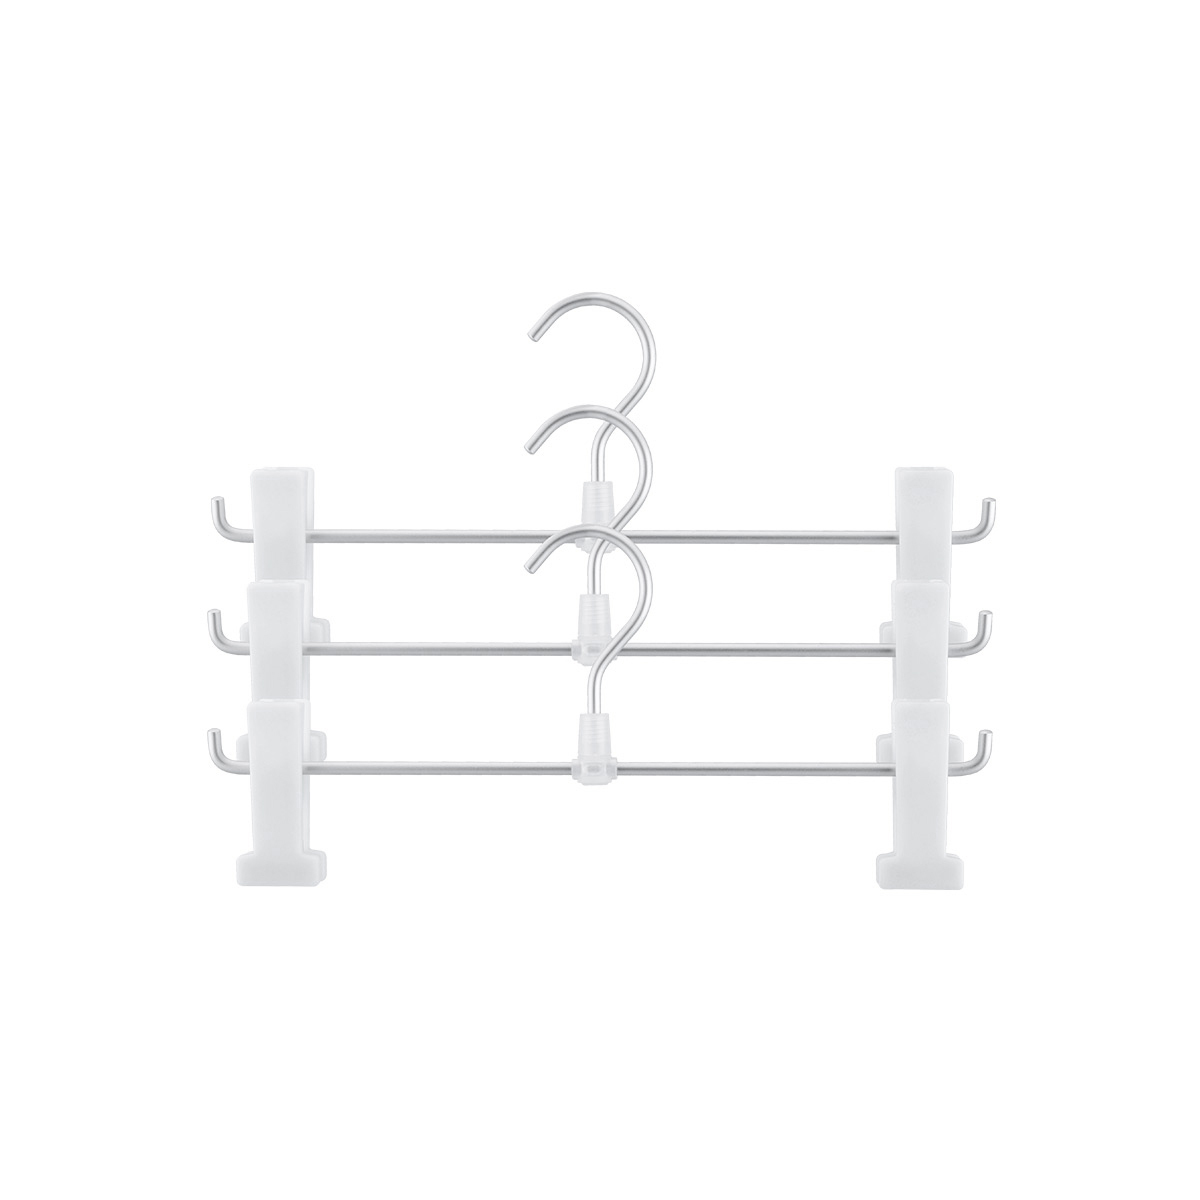 Pearly Clip Hanger (Set of 3)